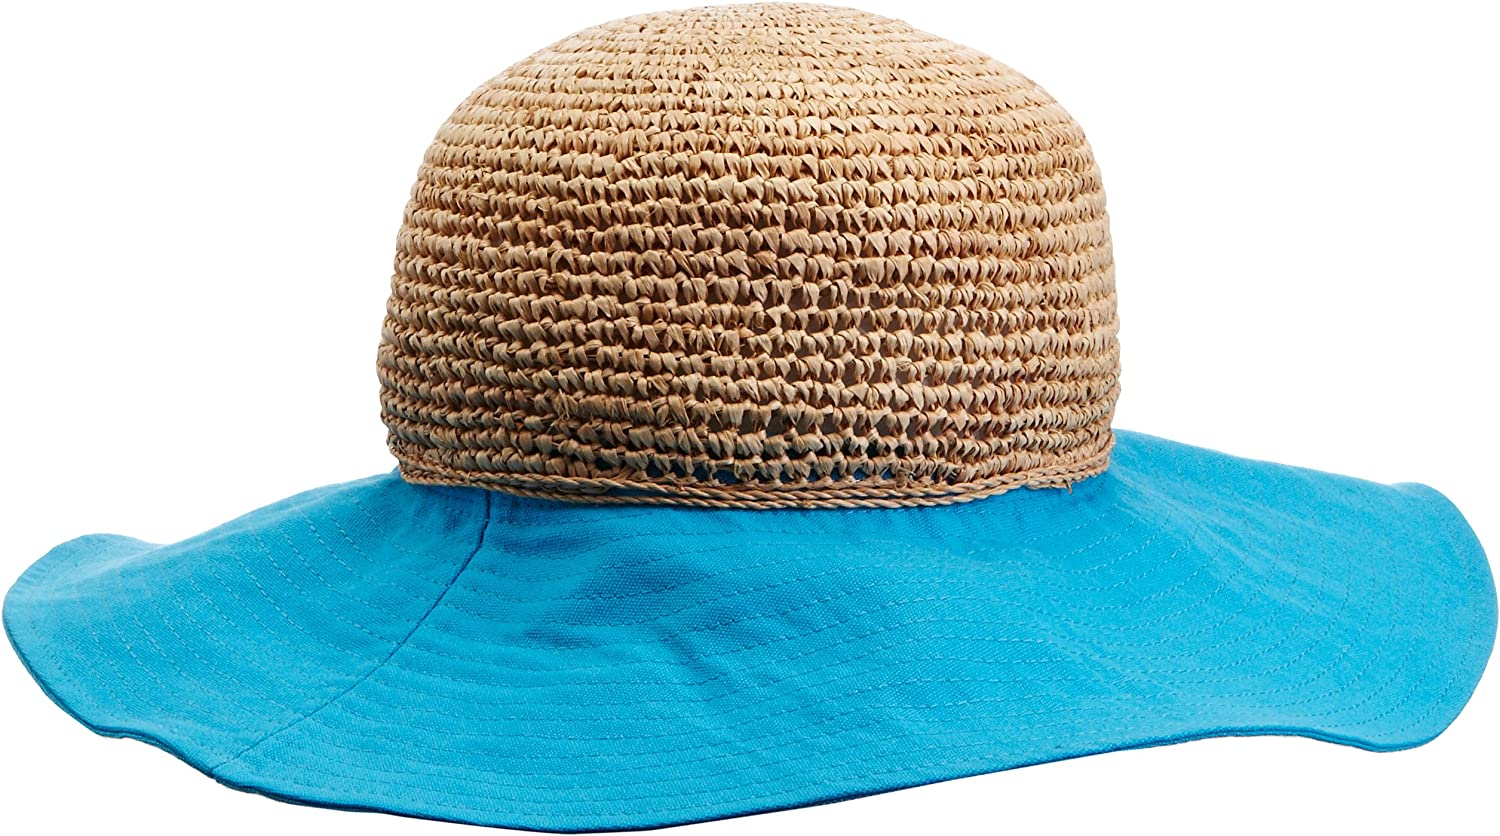 Echo Design Women's Beach Turquoise bluee & Straw Floppy Sun Hat (S M)